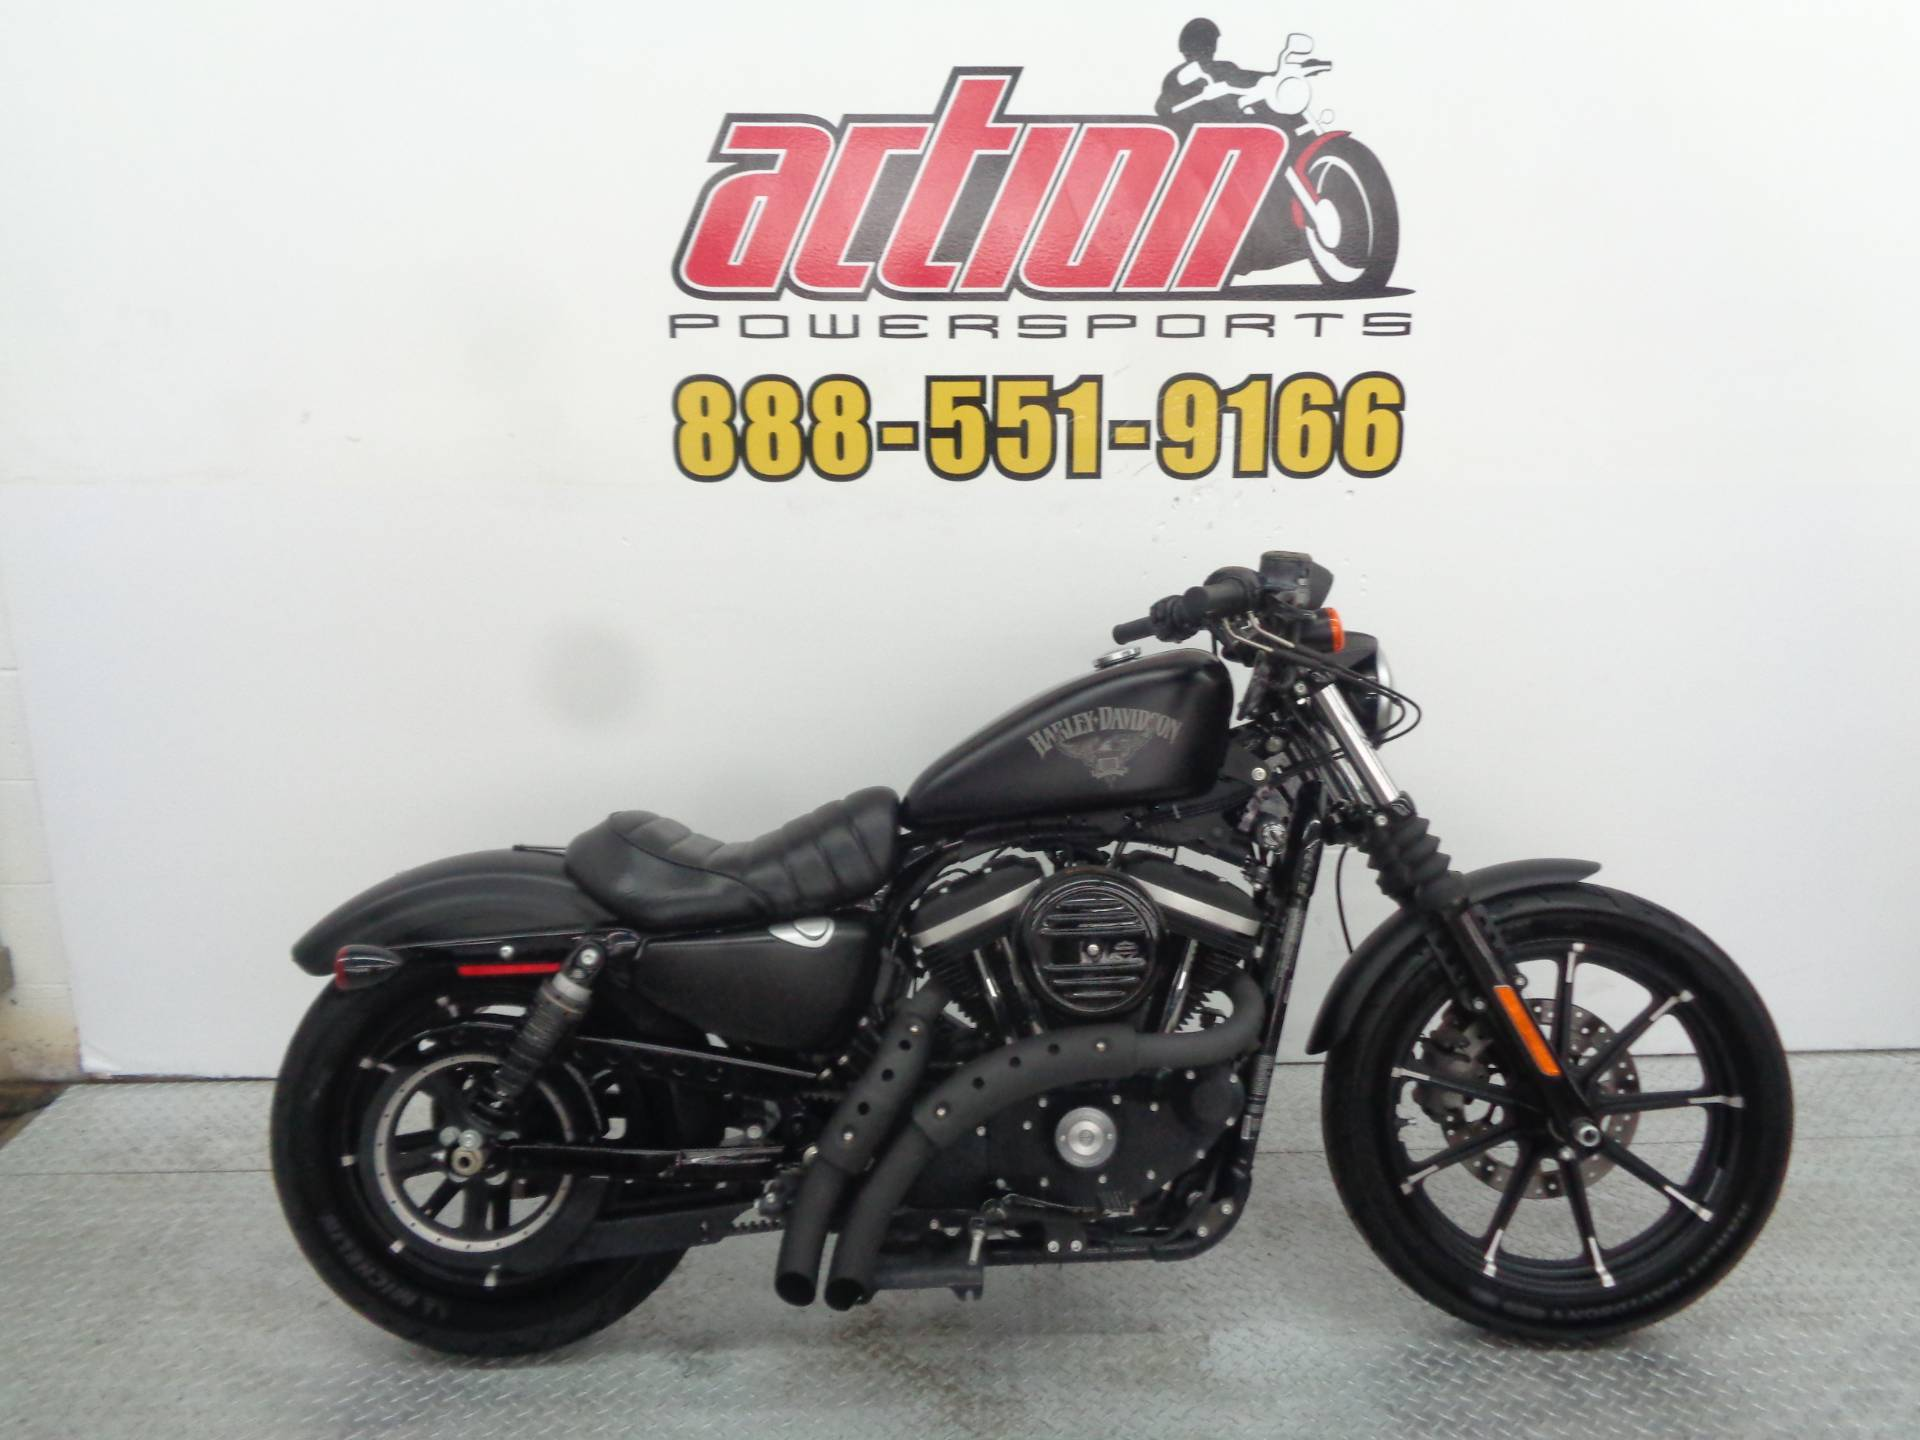 Used 2016 Harley Davidson Iron 883 Motorcycles In Tulsa Ok Stock Rear Fender Wiring Harness Oklahoma